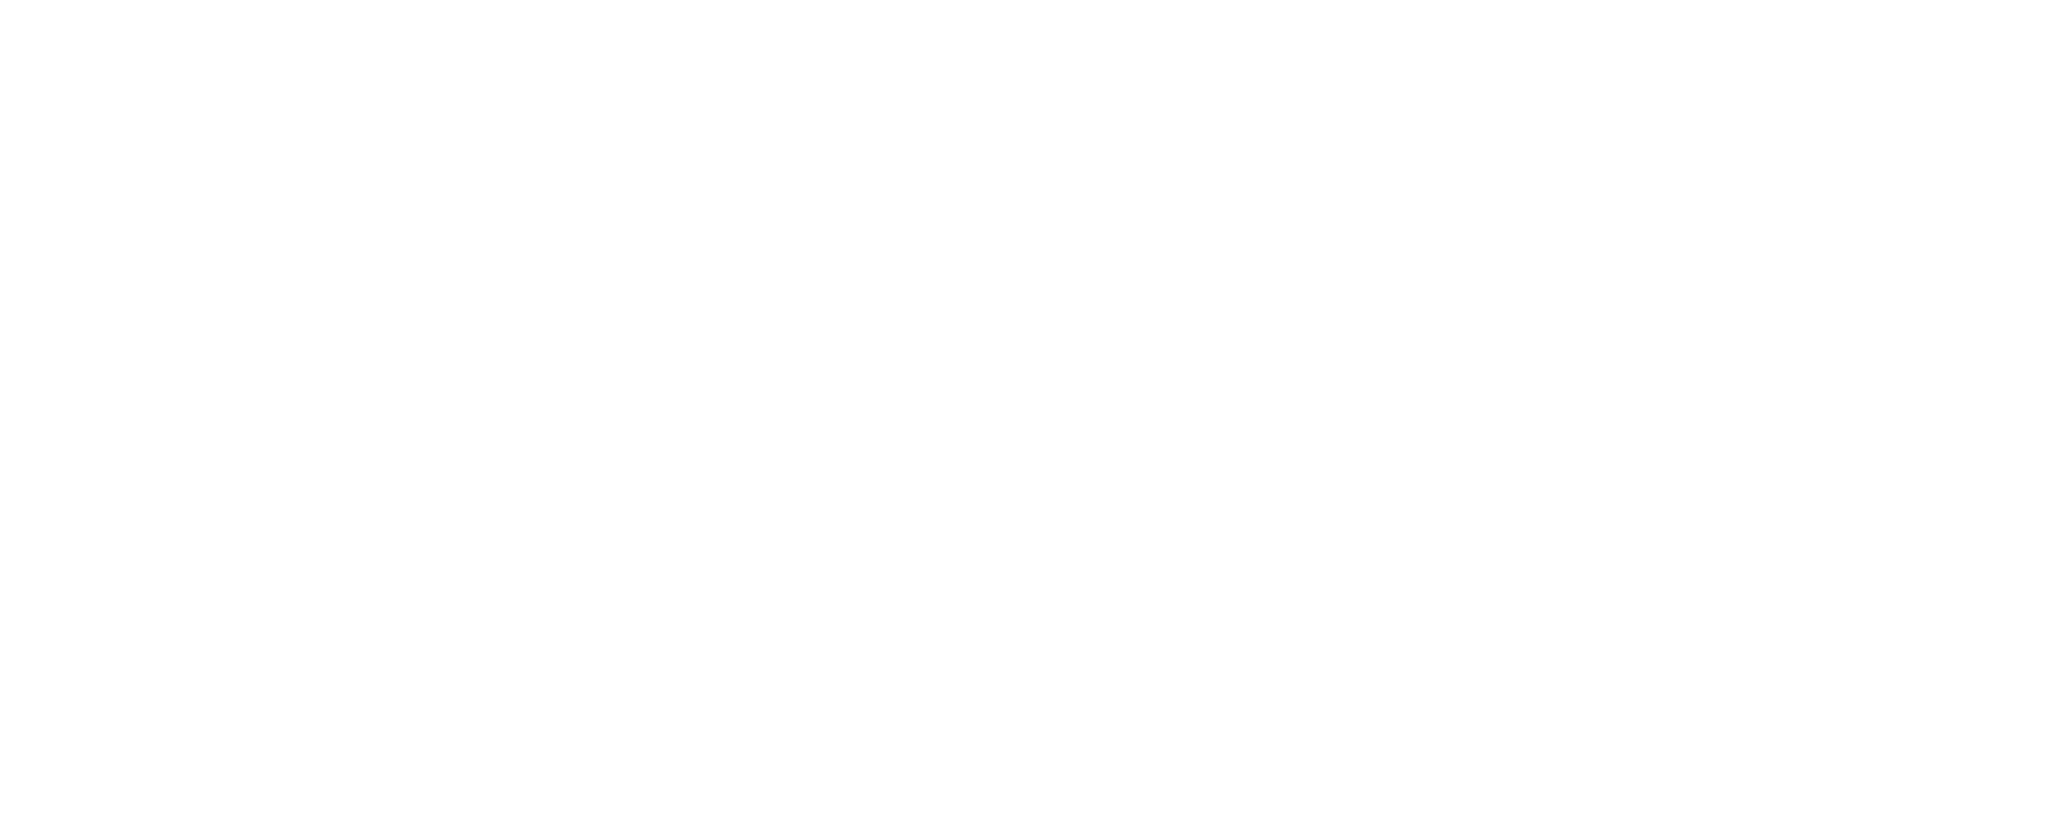 40th Anniversary of Star Trek The Motion Picture and Blade Runner